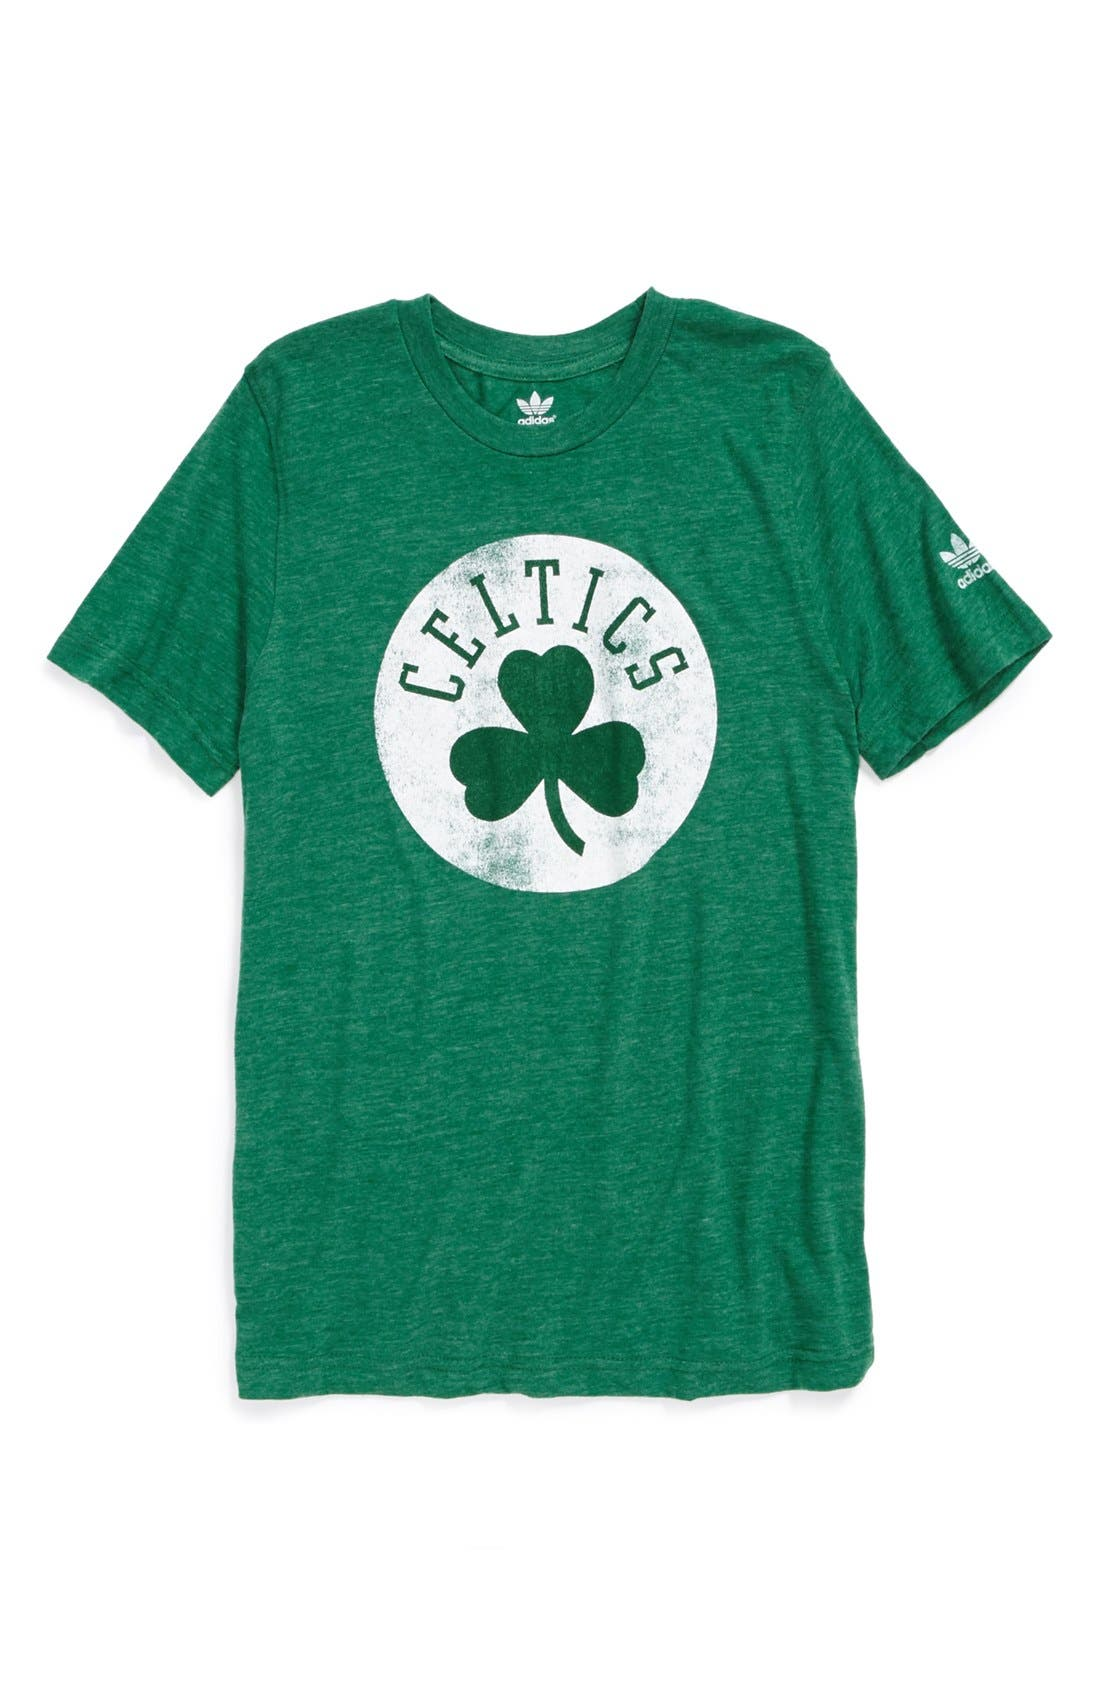 Alternate Image 1 Selected - adidas 'Boston Celtics' T-Shirt (Big Boys)